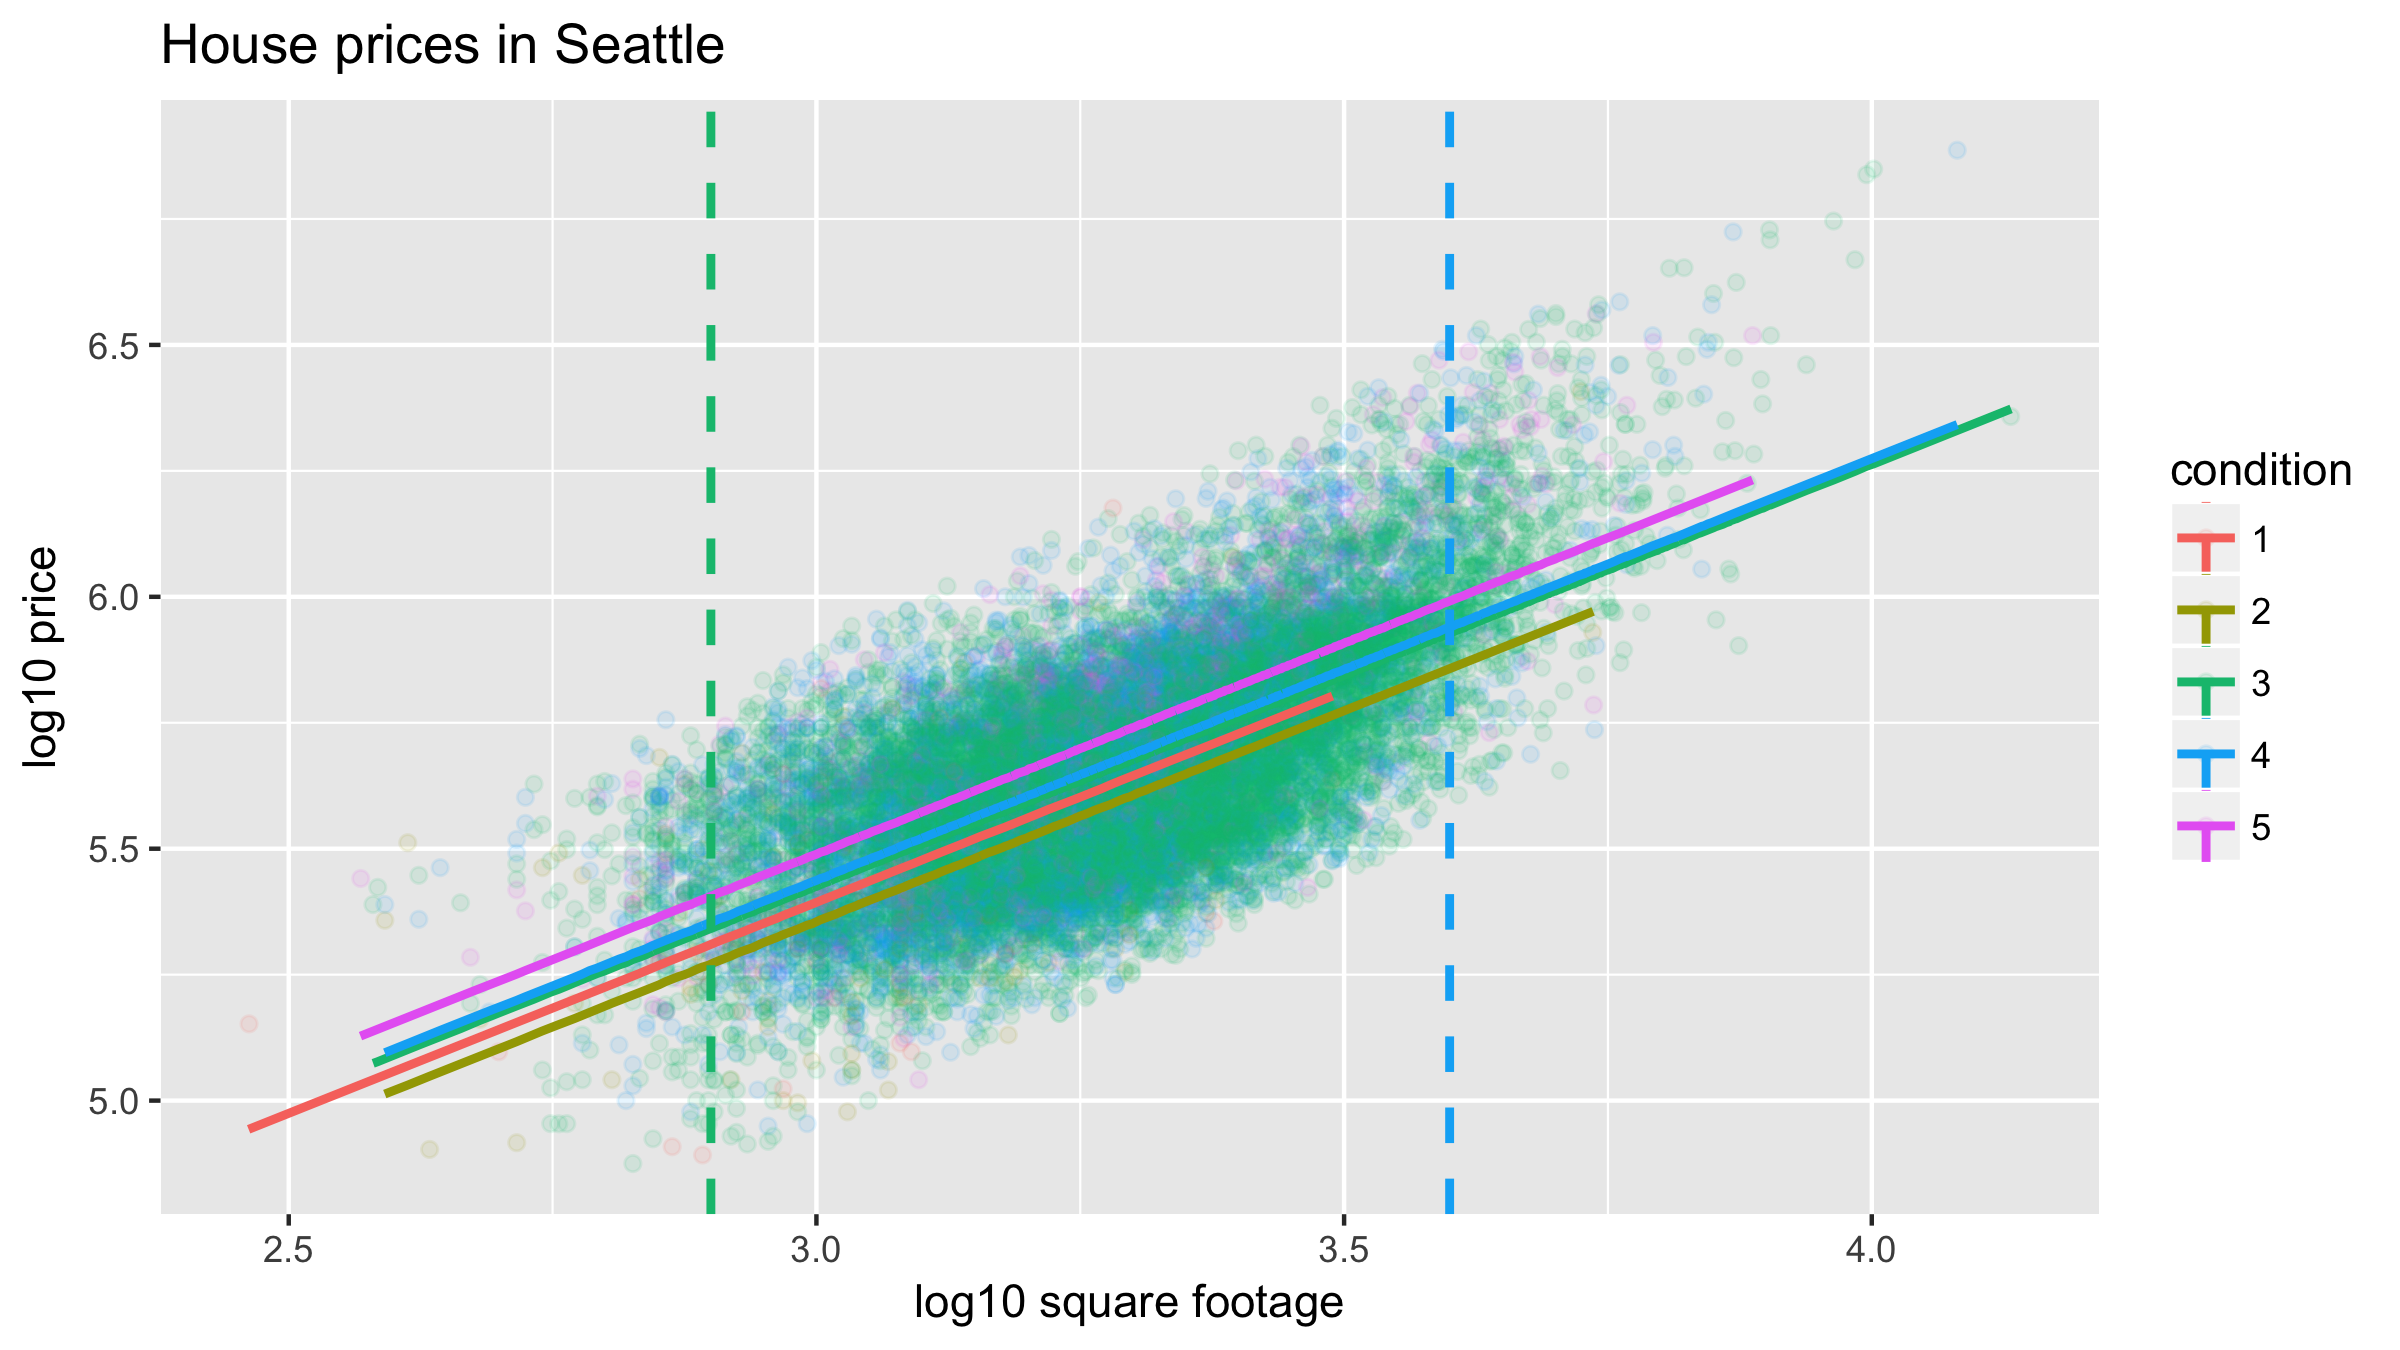 Predicting house price using size & condition | R